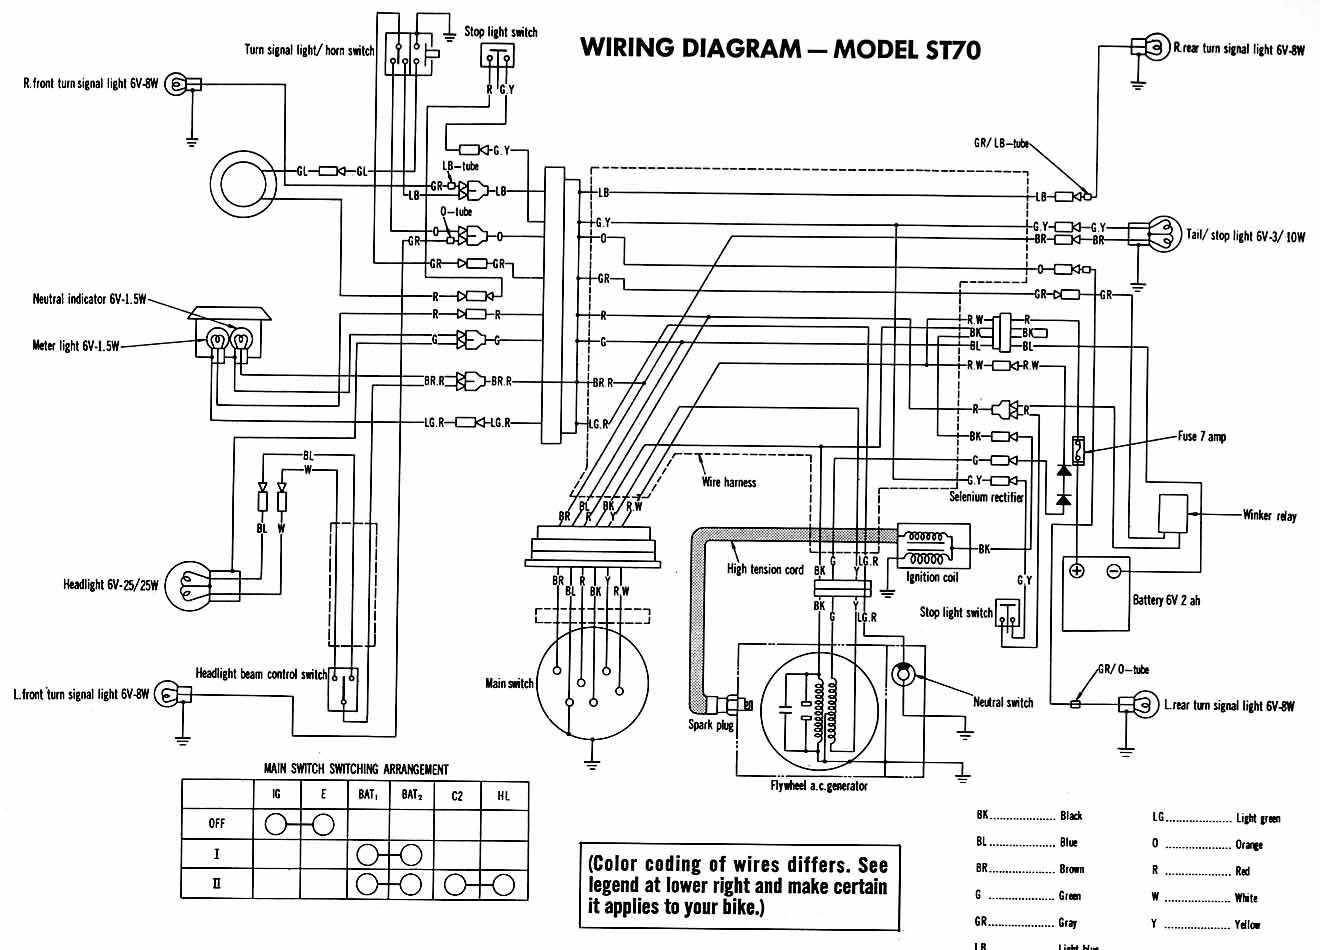 WRG-9303] Honda Gxv390 Wiring on 2003 civic wiring diagram, gx620 wiring diagram, gxv620 wiring diagram, gx 150 wiring diagram, honda gx390 governor diagram, honda gx140 governor linkage diagram, honda gx wiring-diagram, honda gx160 wiring, honda gx340 parts diagram, governor spring diagram, honda gx270 carburetor diagram, gxv390 wiring diagram, honda gx120 engine diagram, honda gx200 diagram spring, honda 390 wiring-diagram, stihl ts400 wiring diagram, gx340 wiring diagram, gx390 parts diagram,